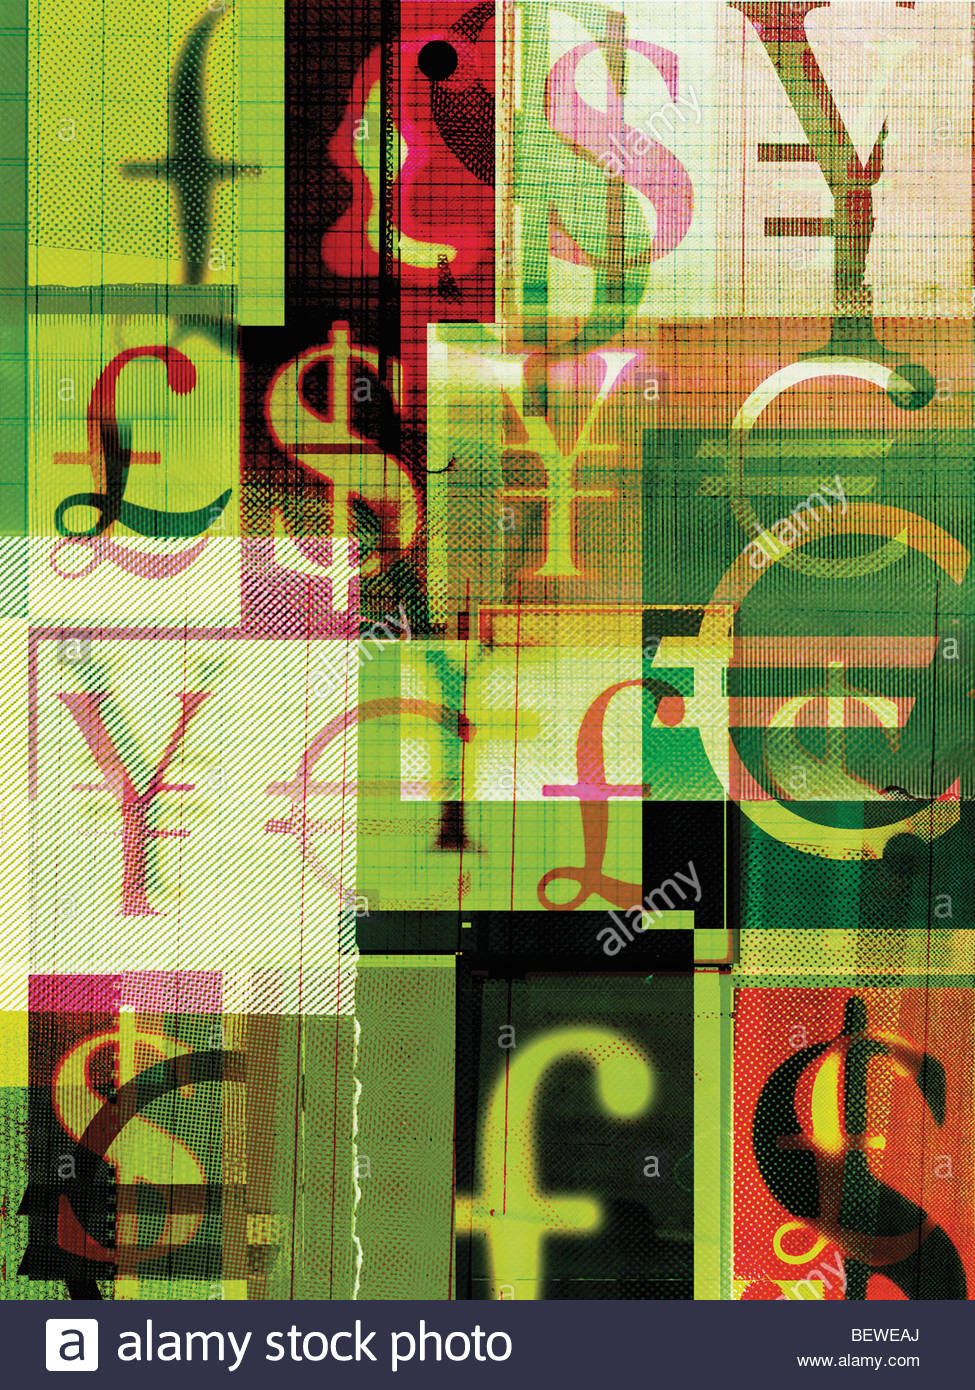 Collage of foreign currency symbols stock photo 26375626 alamy collage of foreign currency symbols buycottarizona